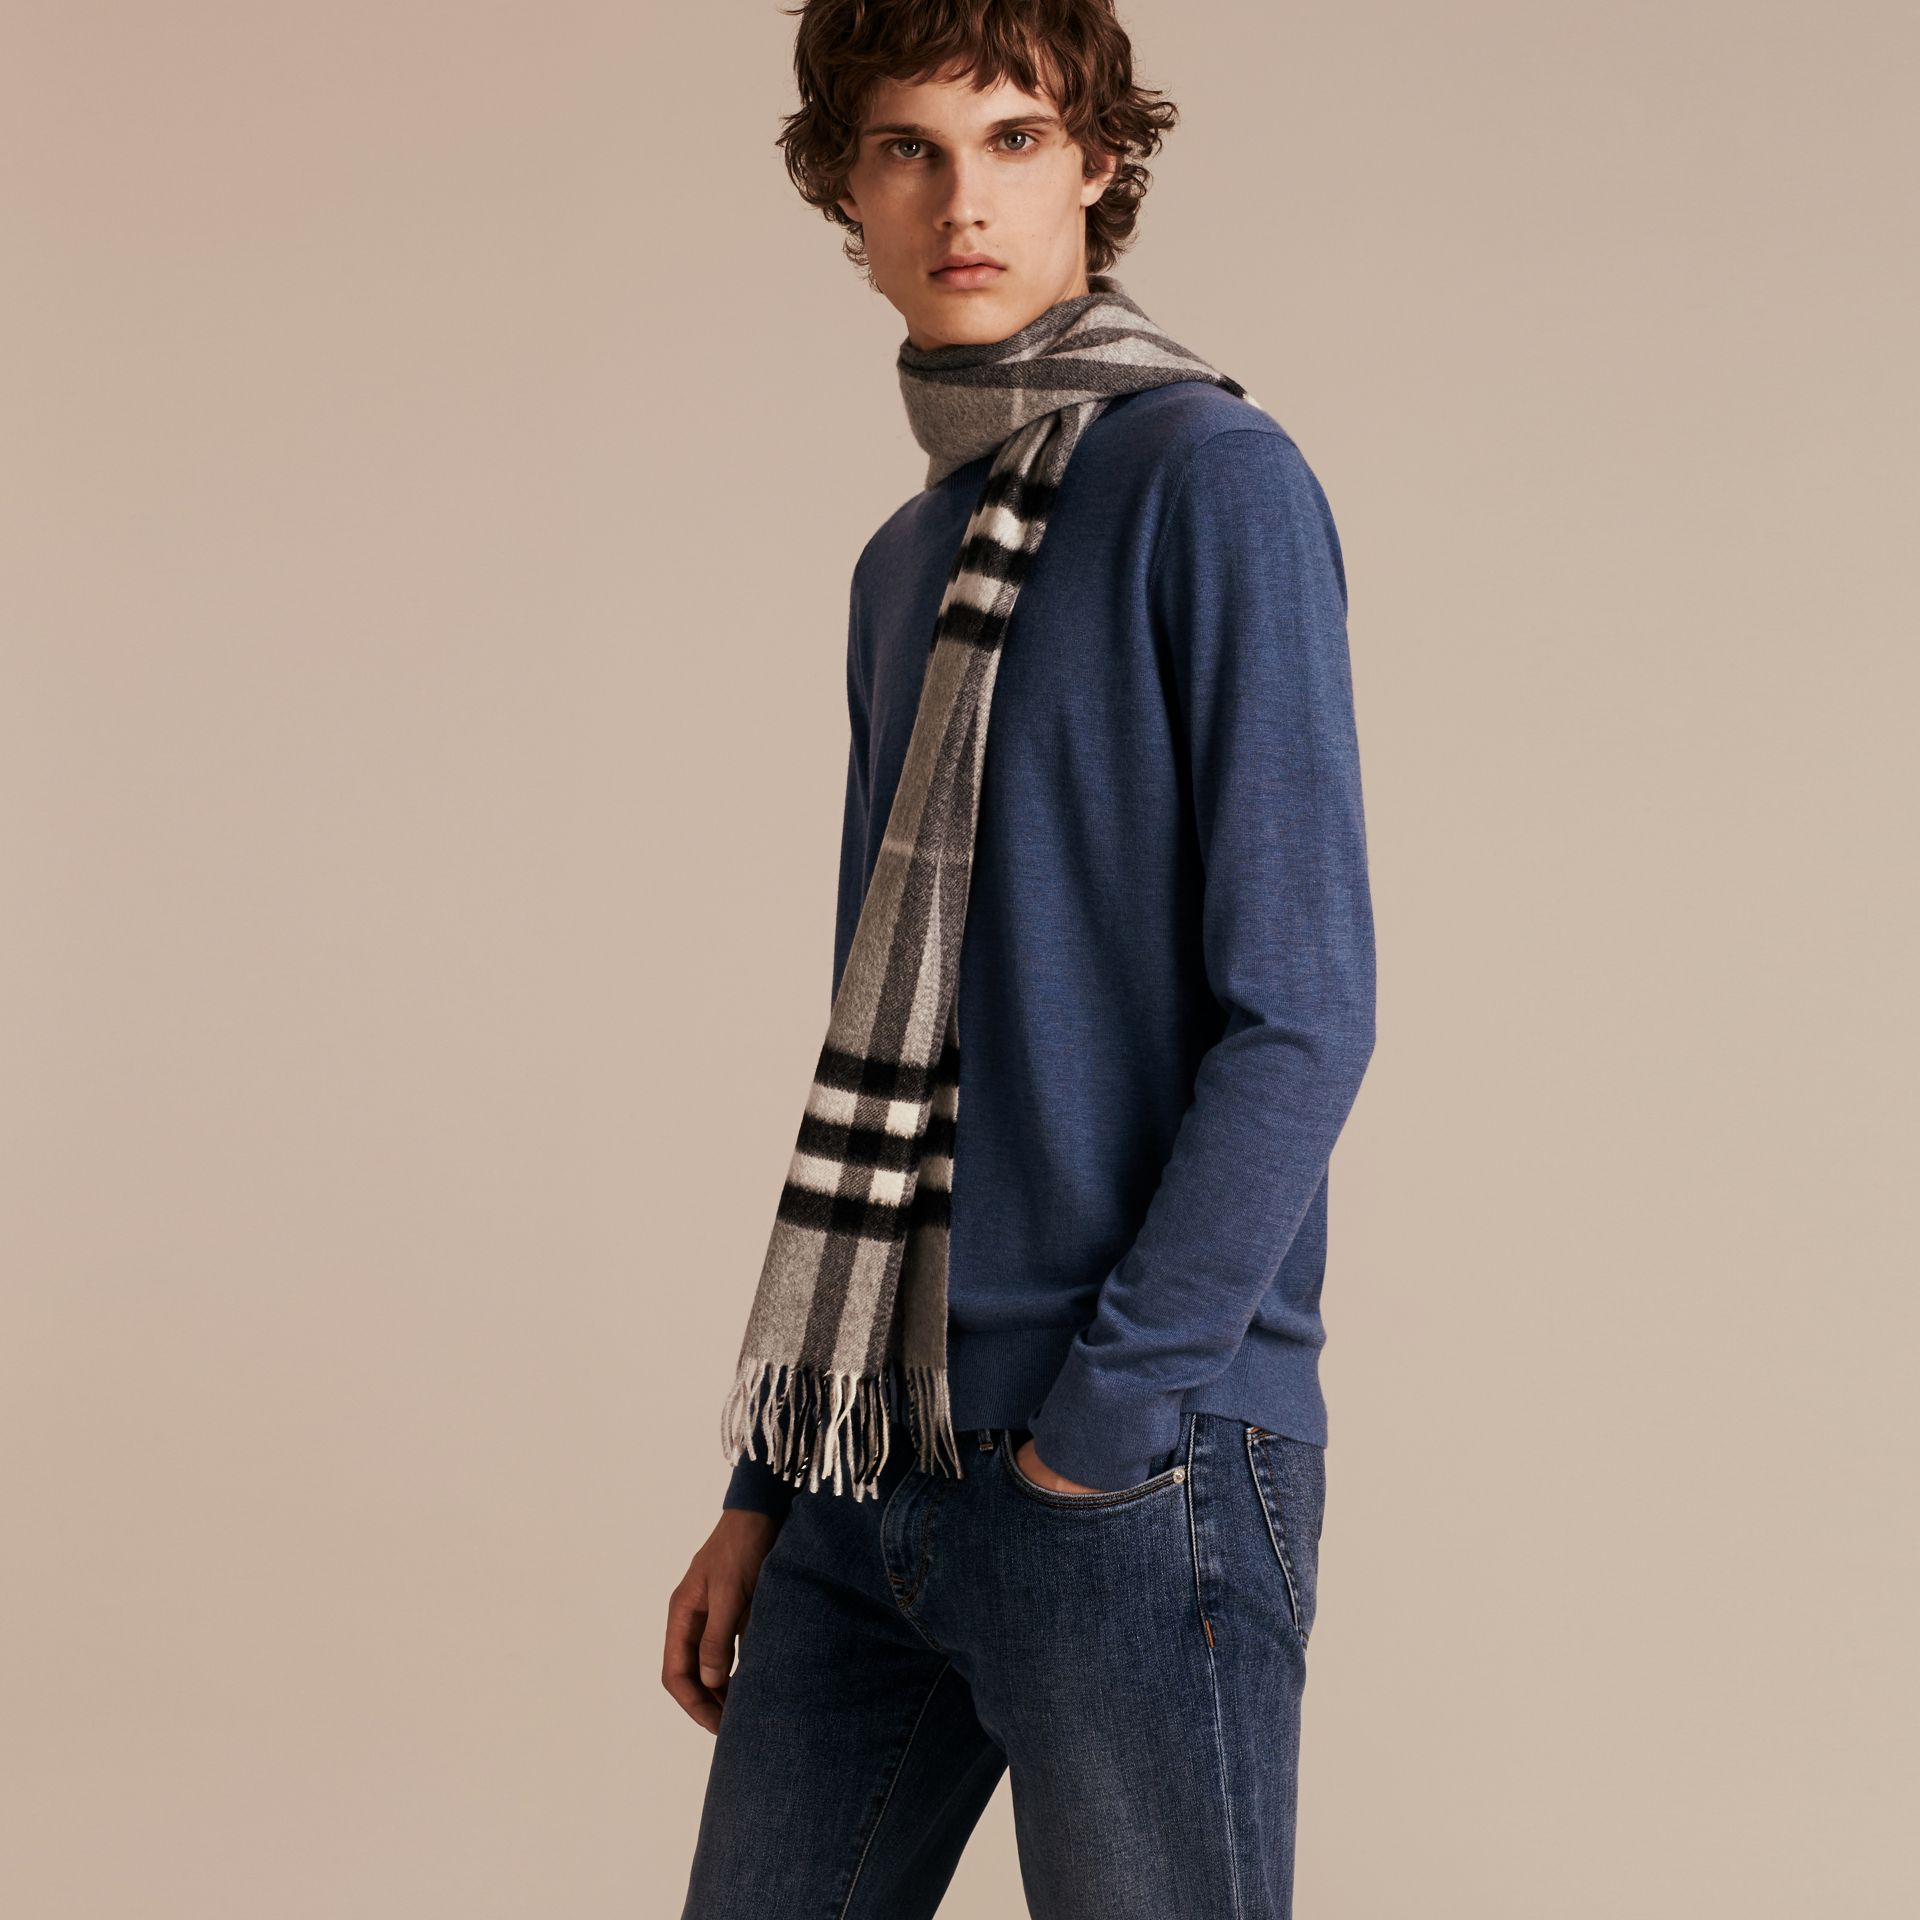 Check Jacquard Detail Cashmere Sweater in Dusty Blue - Men | Burberry Canada - gallery image 6